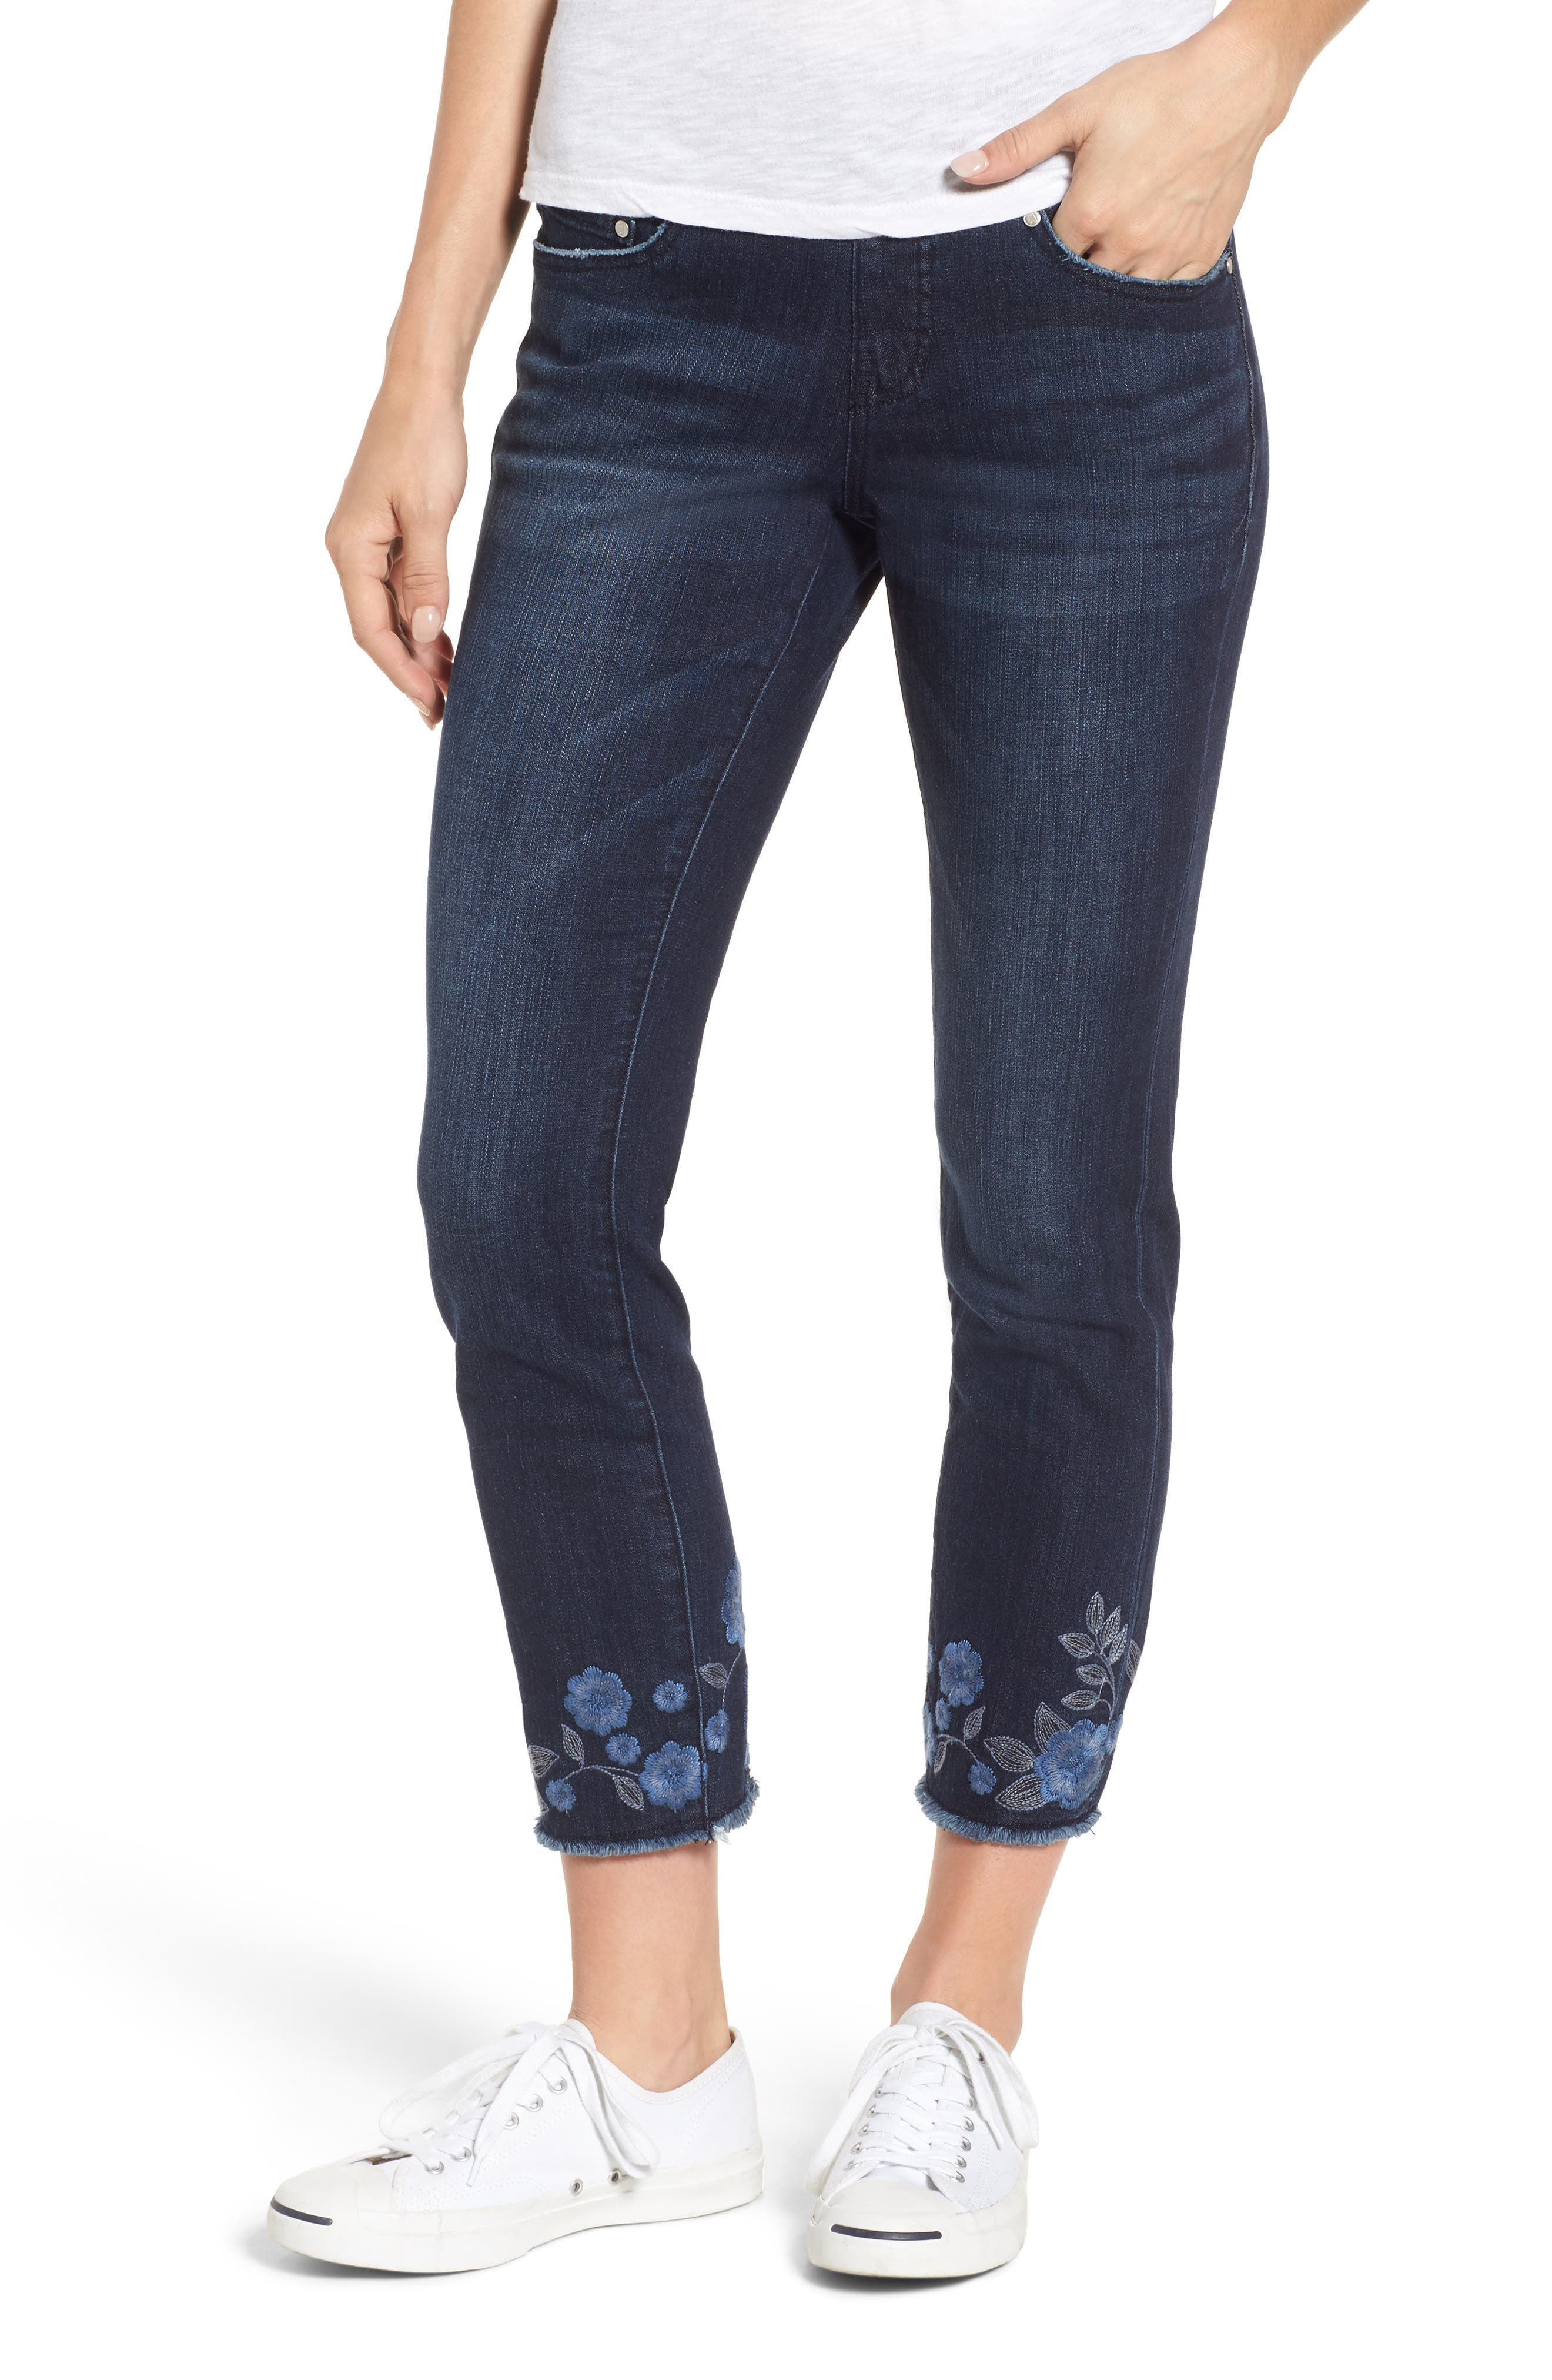 Amelia Embroidered Slim Ankle Jeans,                         Main,                         color, Meteor Wash